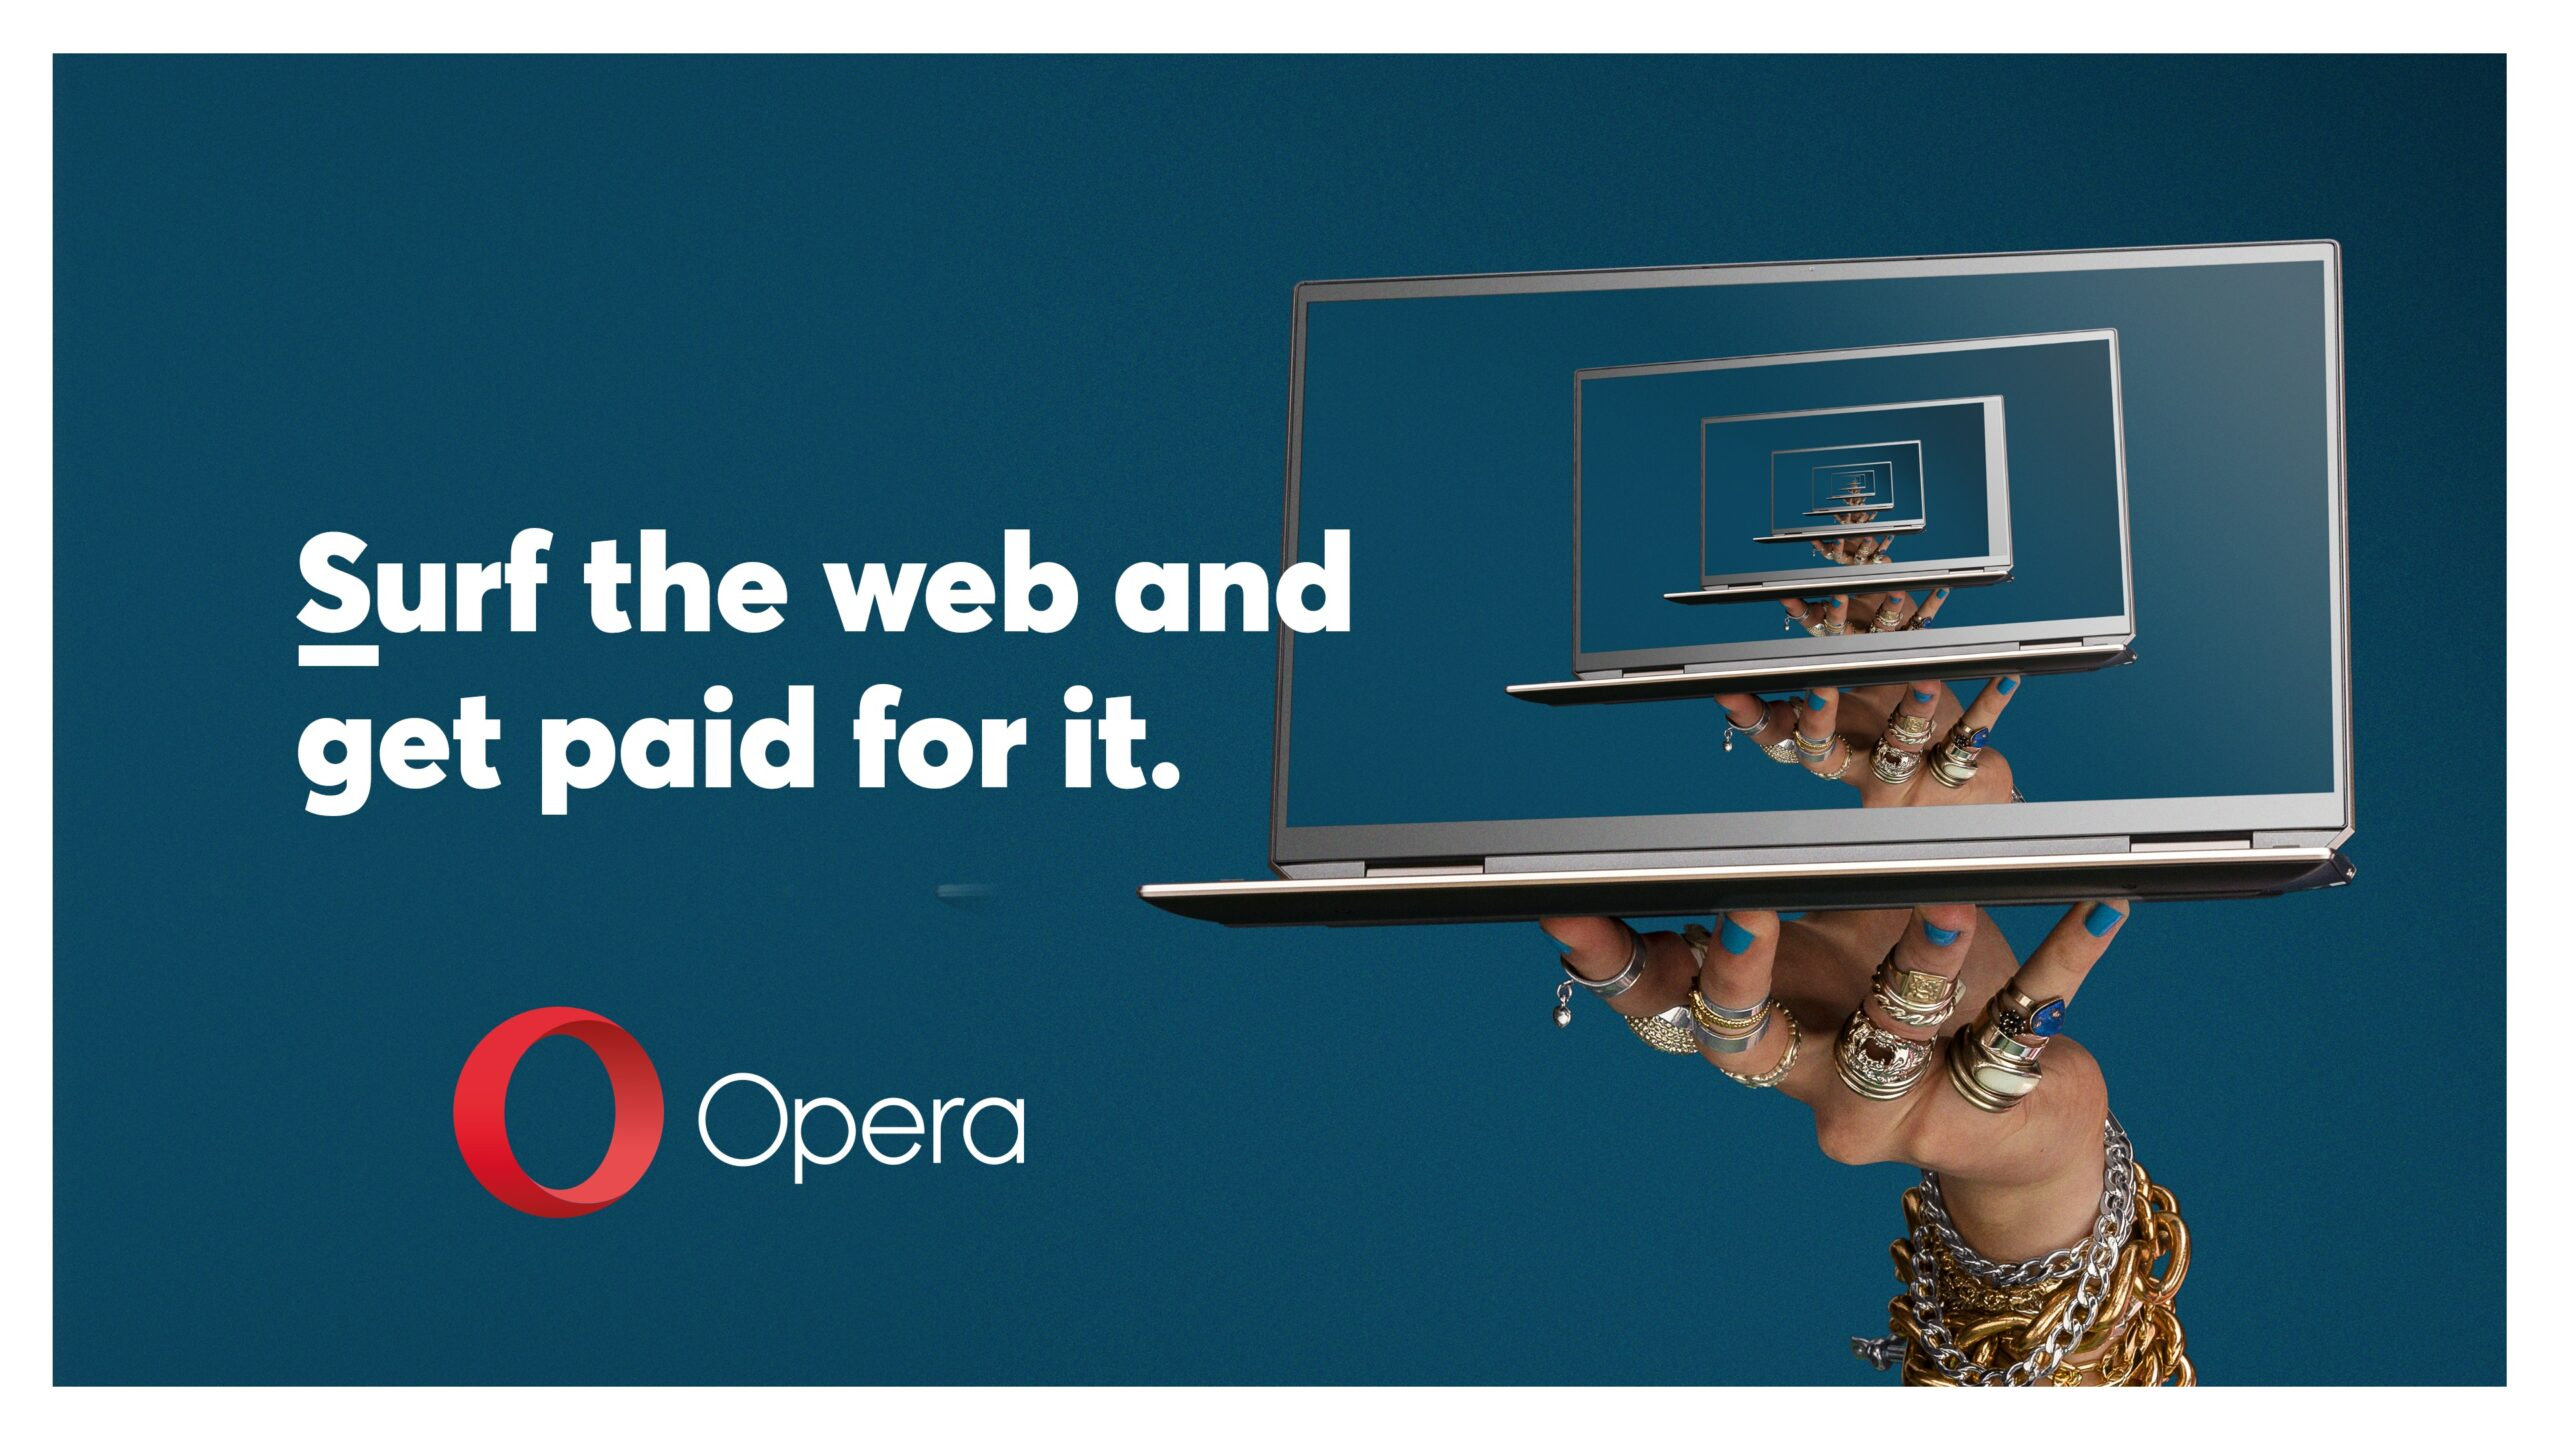 Probably the coolest job in the world: Opera is looking for a personal browser, a person to browse the web and share their experience with the world - Opera Newsroom